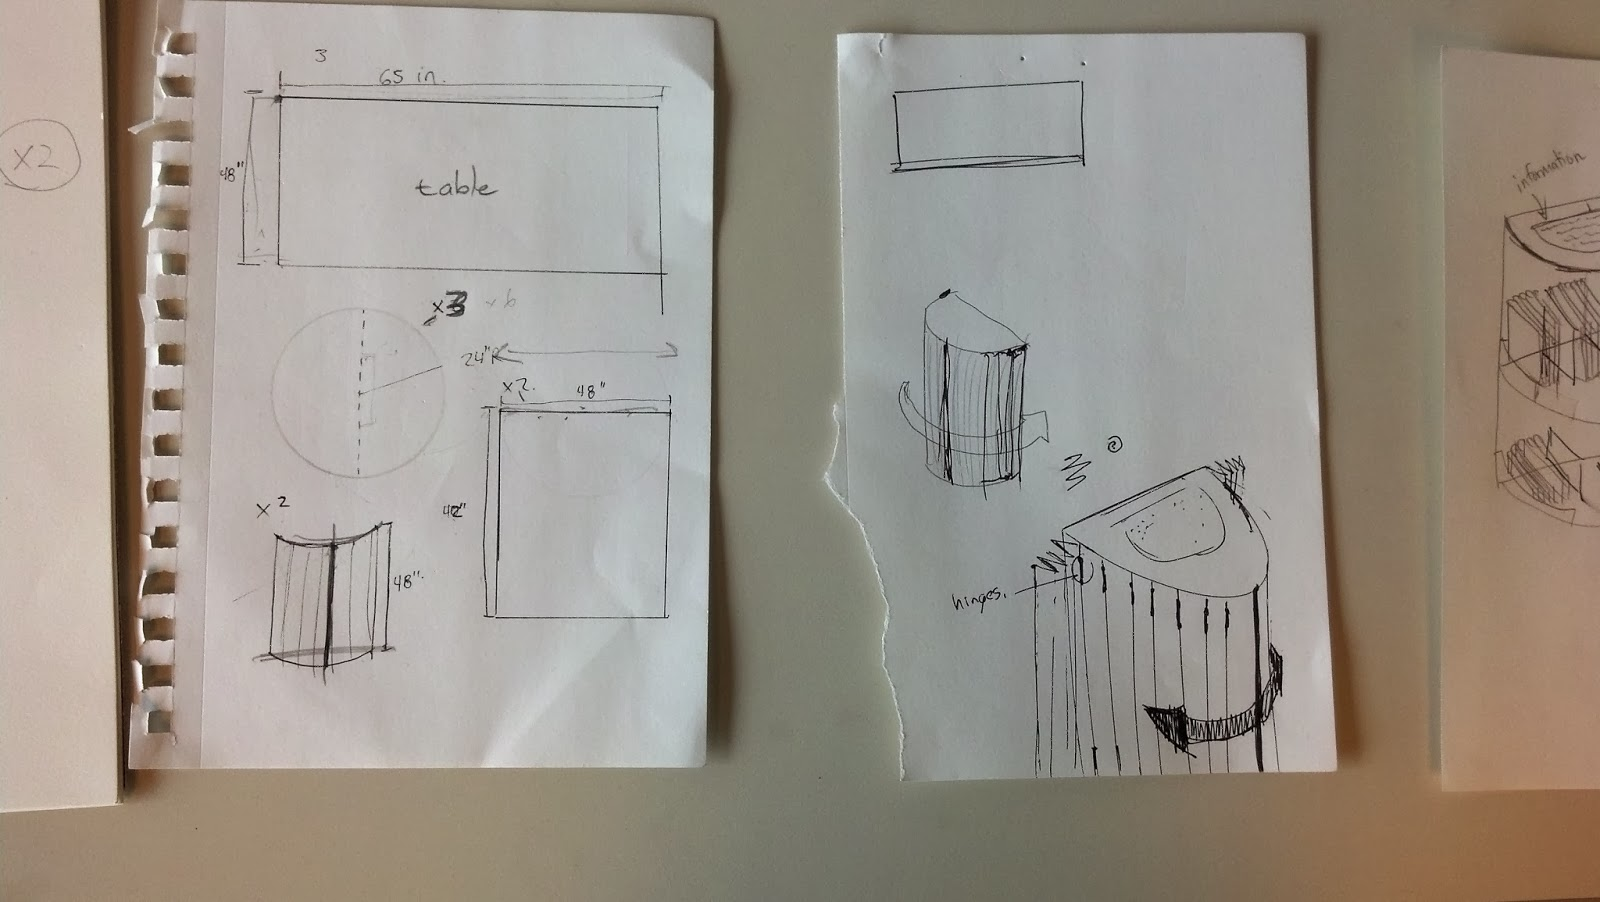 Image shows two pages pinned to a wall. The pages contain sketches of panel sizing and foldable screen doors for the round side sections of the exhibit display.